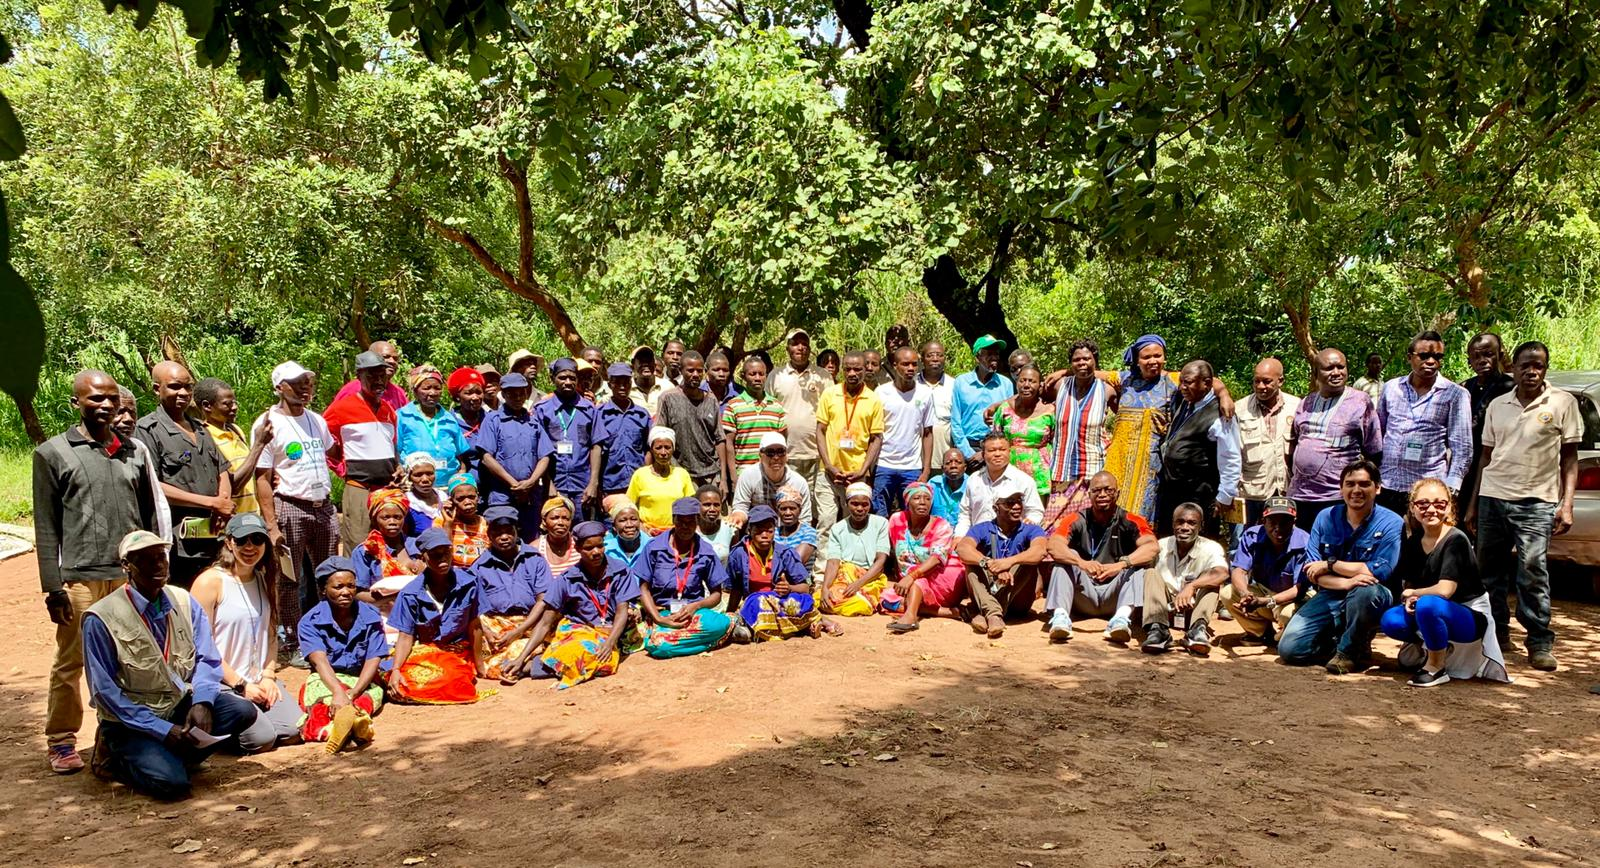 Exchange participants and community members come together in a local community village and multiple land use area on the fringe of Gorongosa National Park to share their experiences and learn from each other. February 22, 2019.